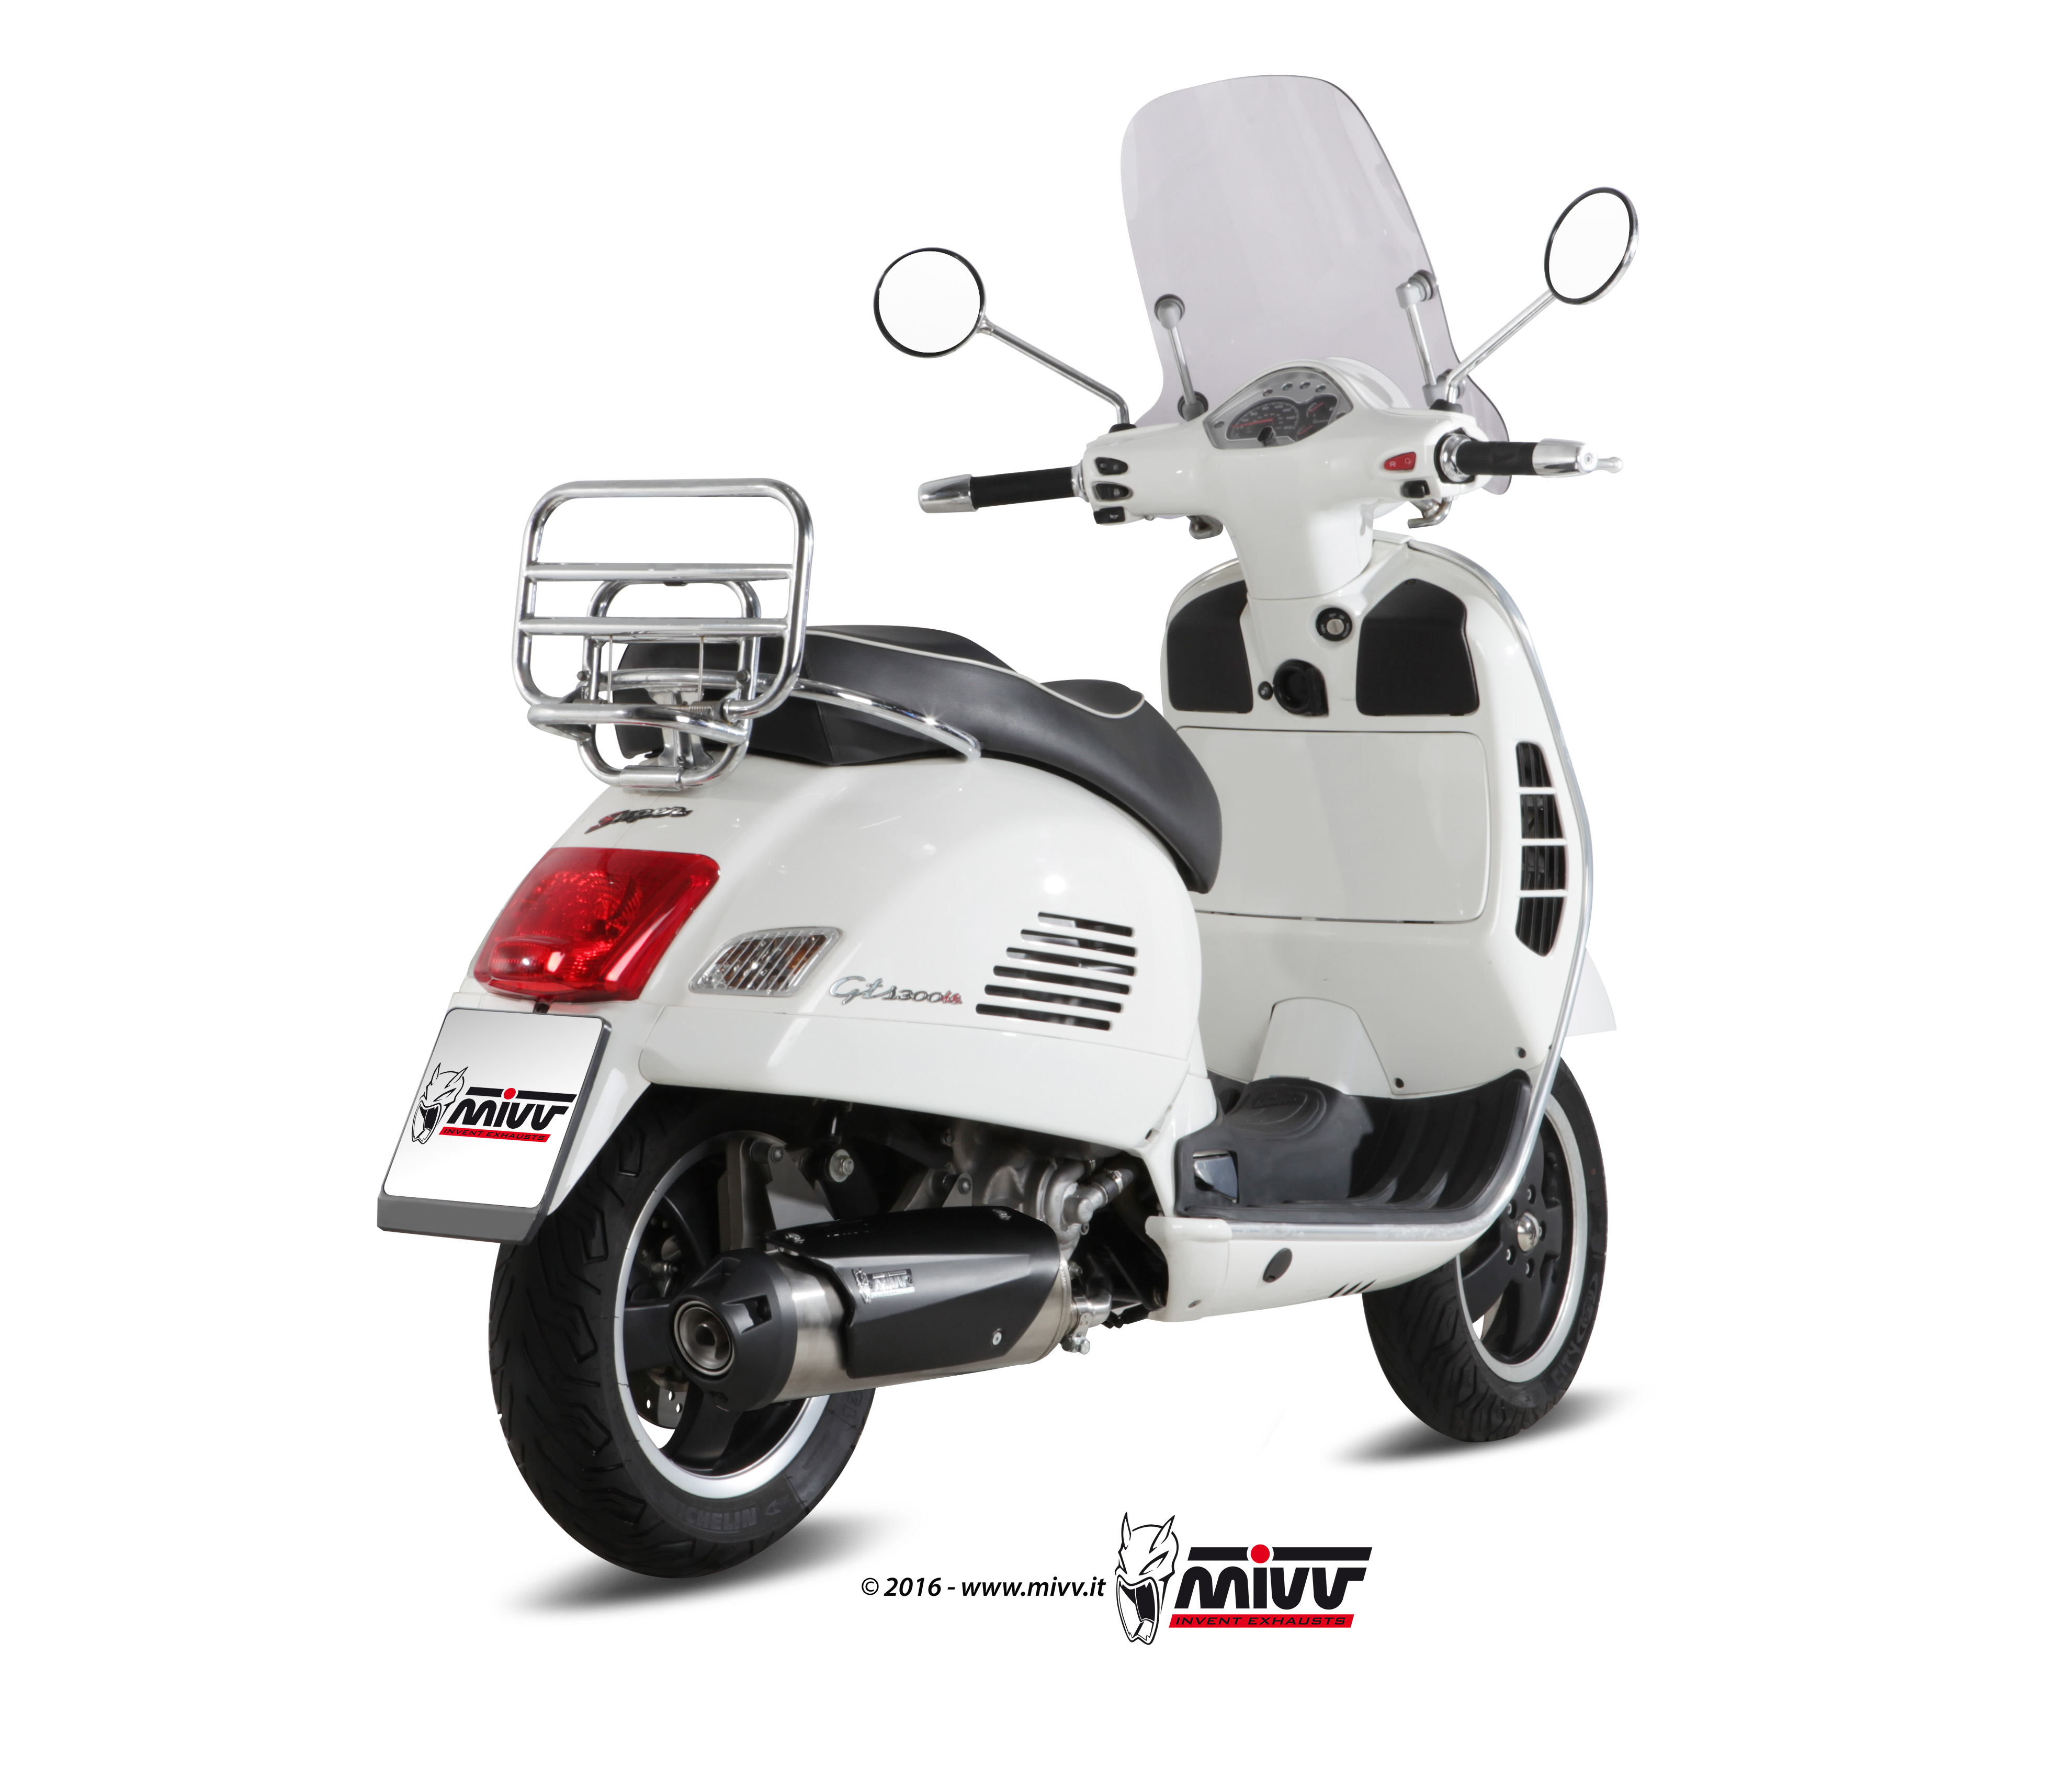 piaggio vespa gts 300 2013 xx full system mivv exhaust. Black Bedroom Furniture Sets. Home Design Ideas